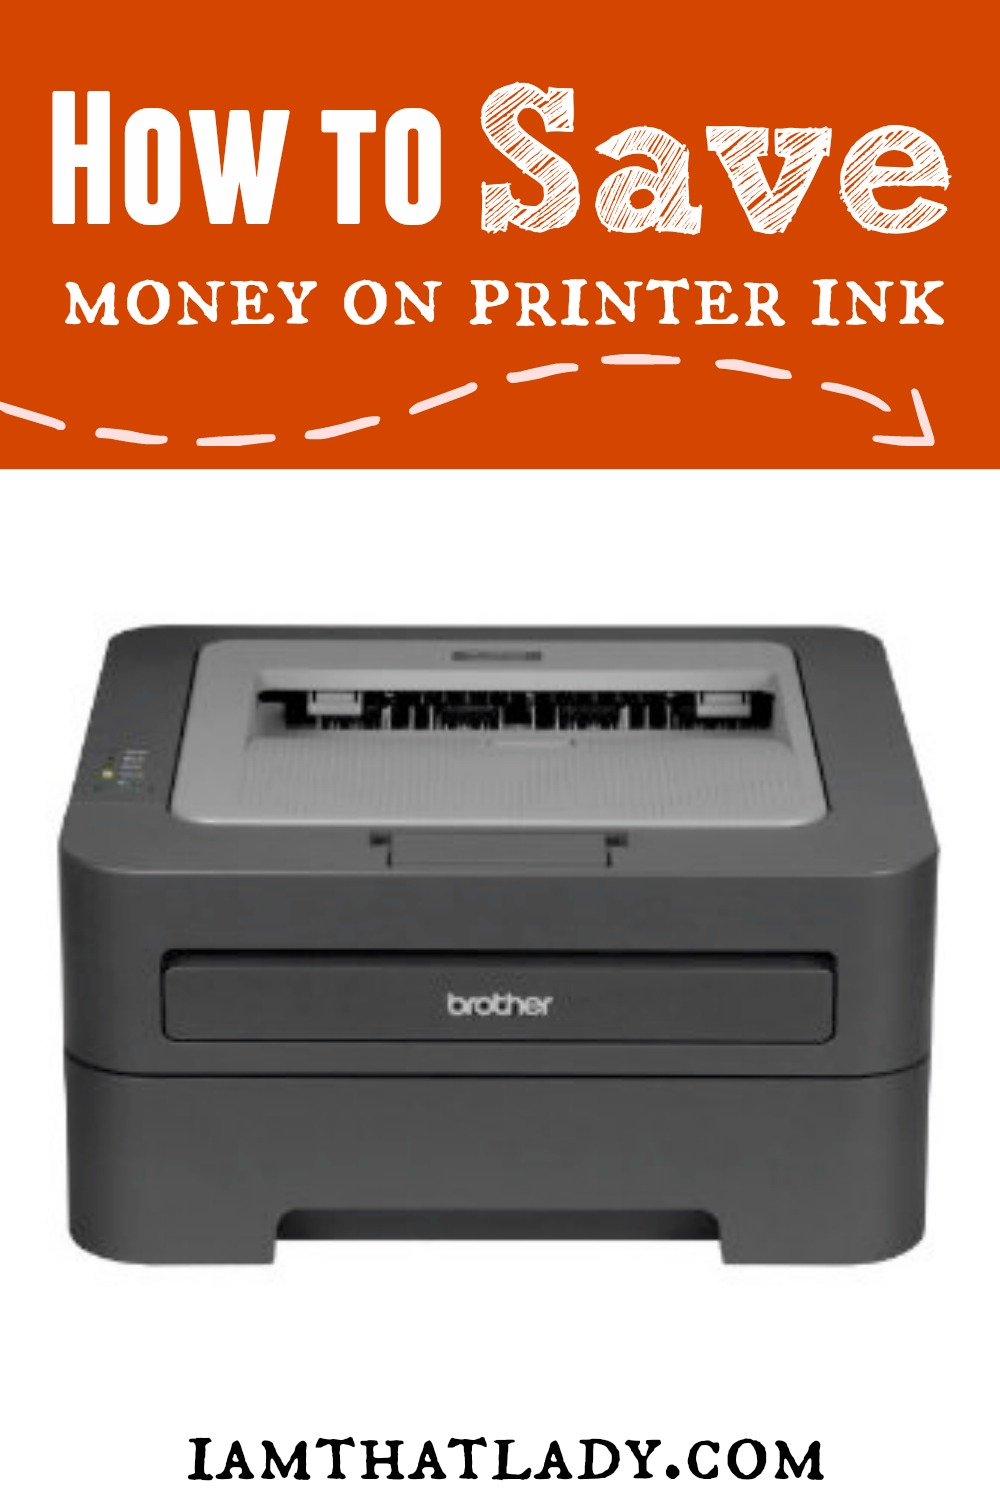 Are you sick and tired of spending so much money on ink to print your coupons? Here are my secret tips on how I save money while printing off my coupons.